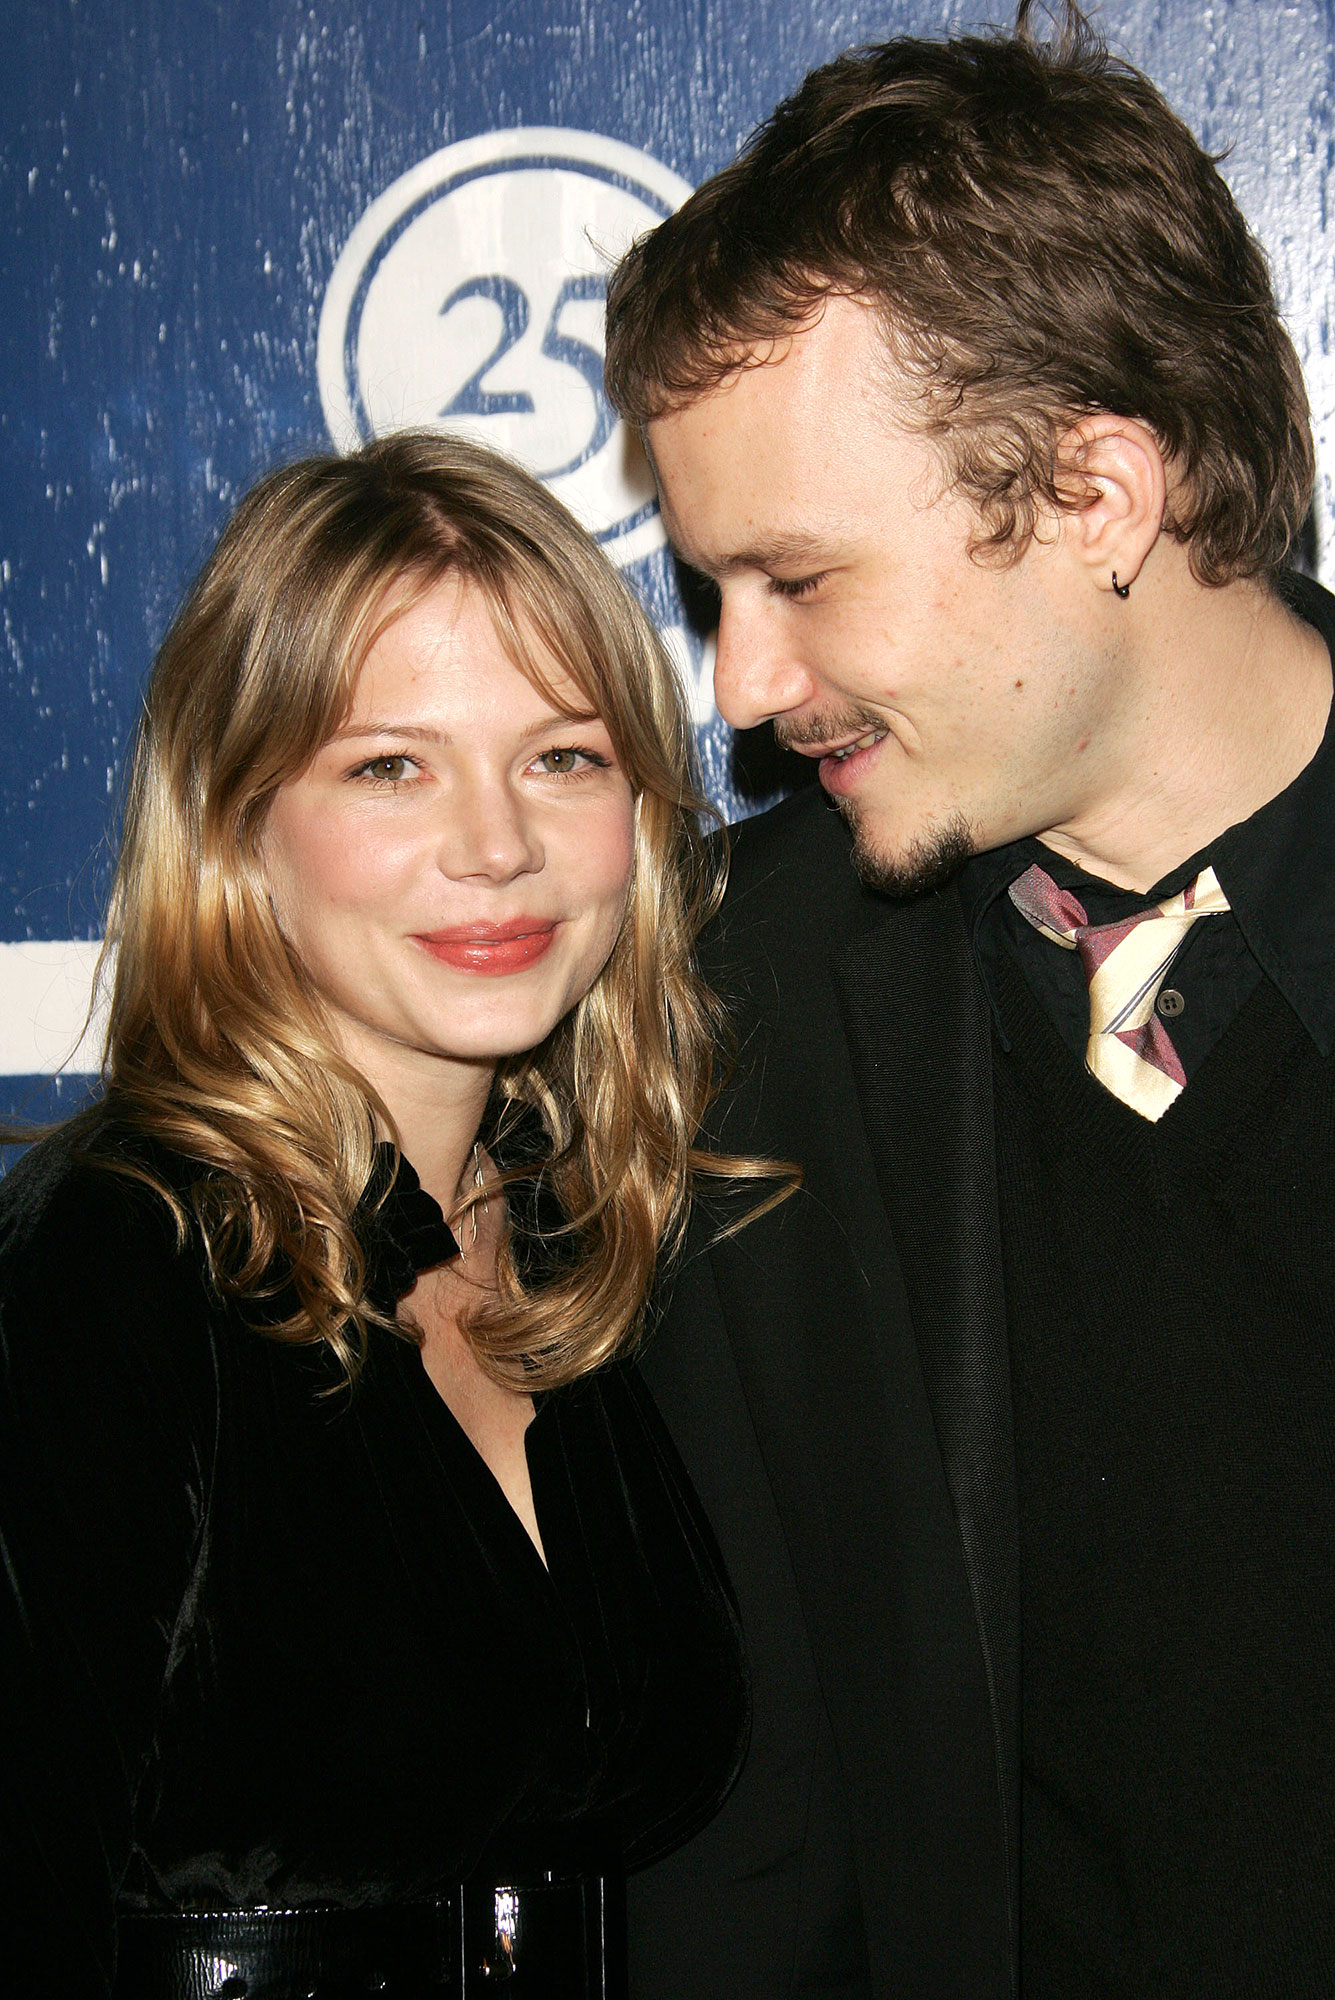 """Michelle Williams' Most Bittersweet Quotes About Heath Ledger and Their Daughter Matilda - Williams had trouble coming to terms with the physical loss of Ledger after his death. """"For a really long time, I couldn't stop touching people's faces. I was like, 'Look at you. You move. You're here.' It all just seemed so fleeting and I wanted to hold onto it,"""" she told Vogue in September 2011."""